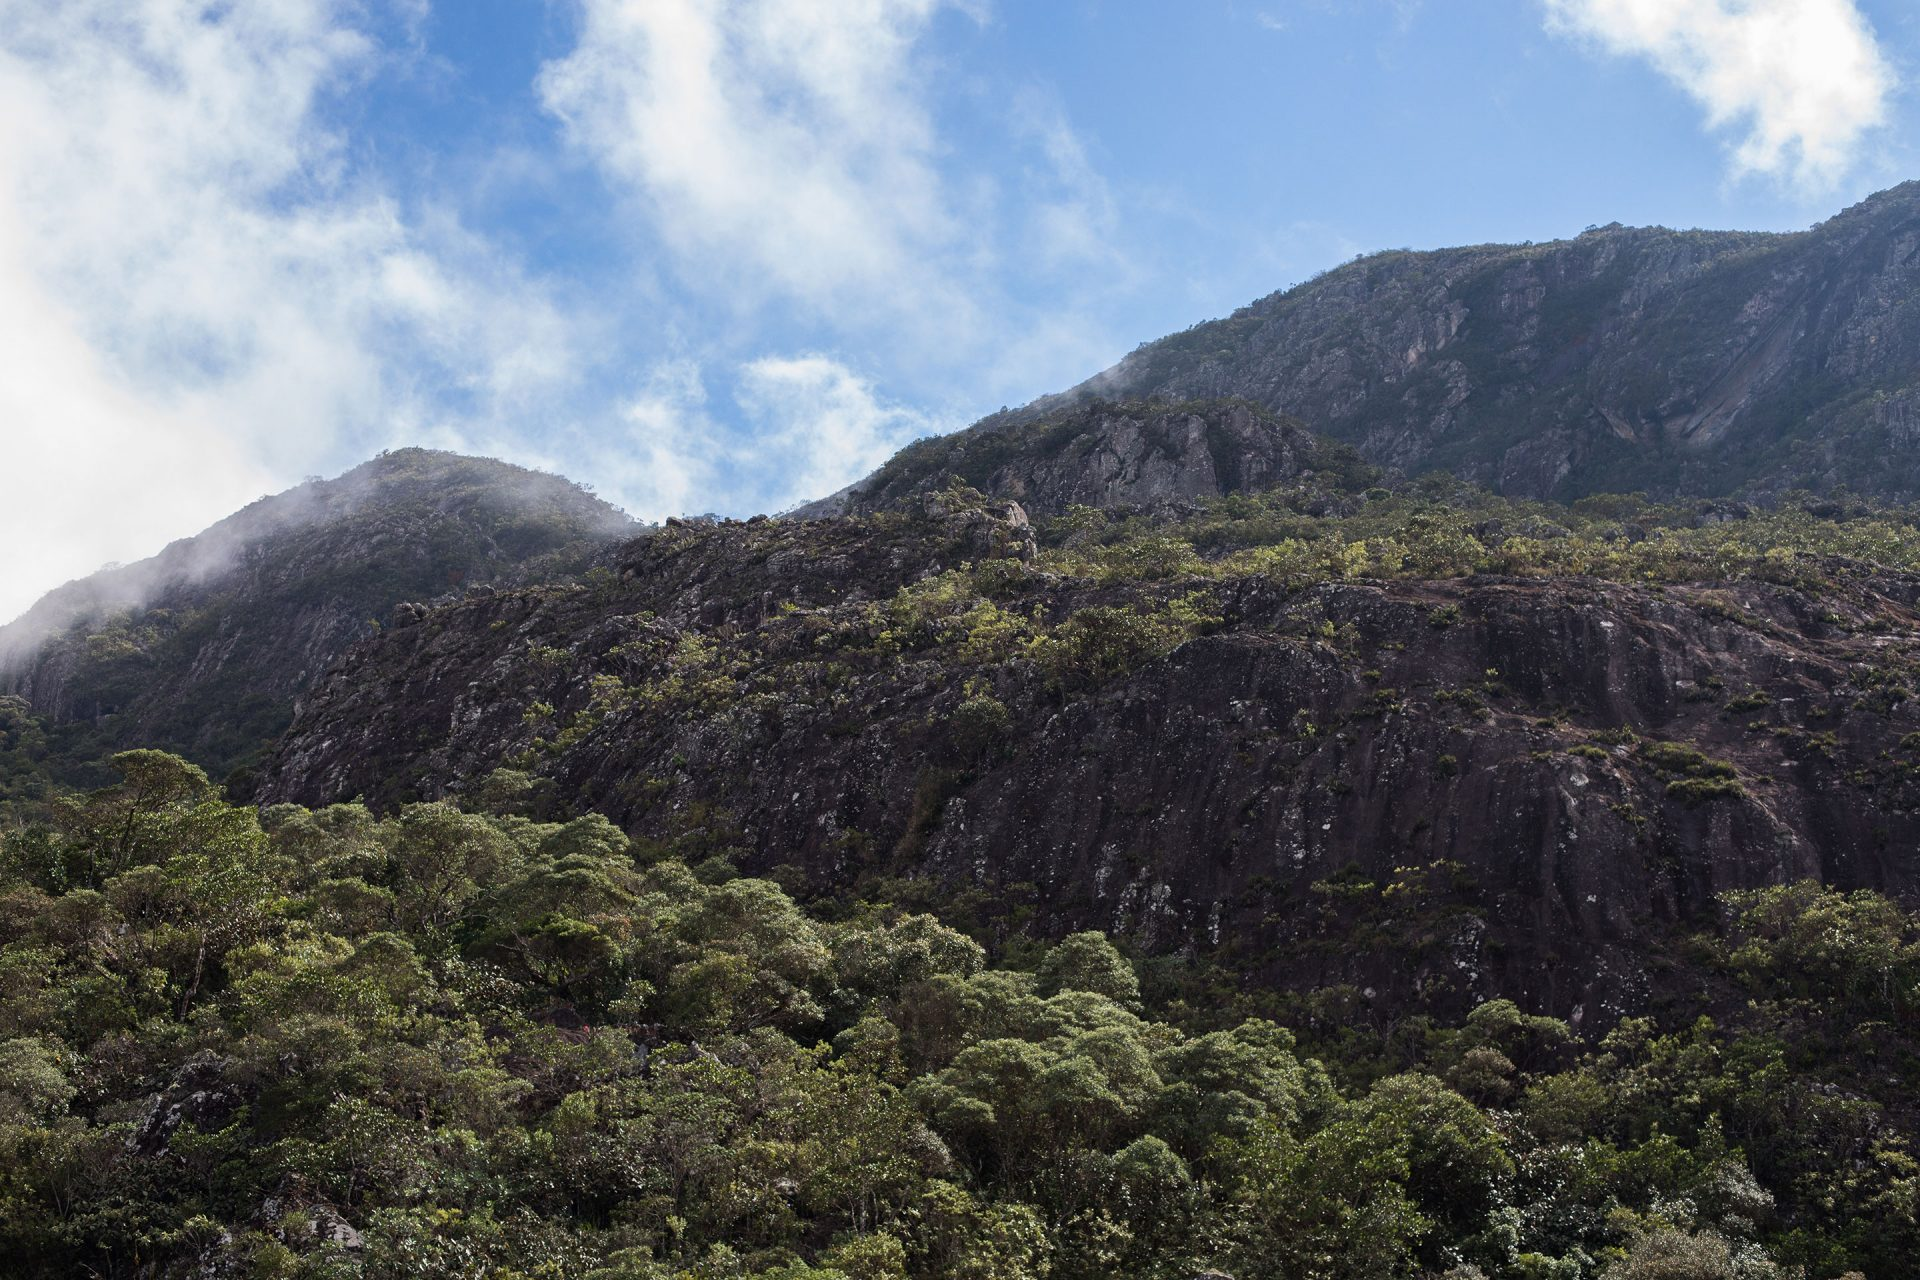 The mountains near Santuario do Caraca.